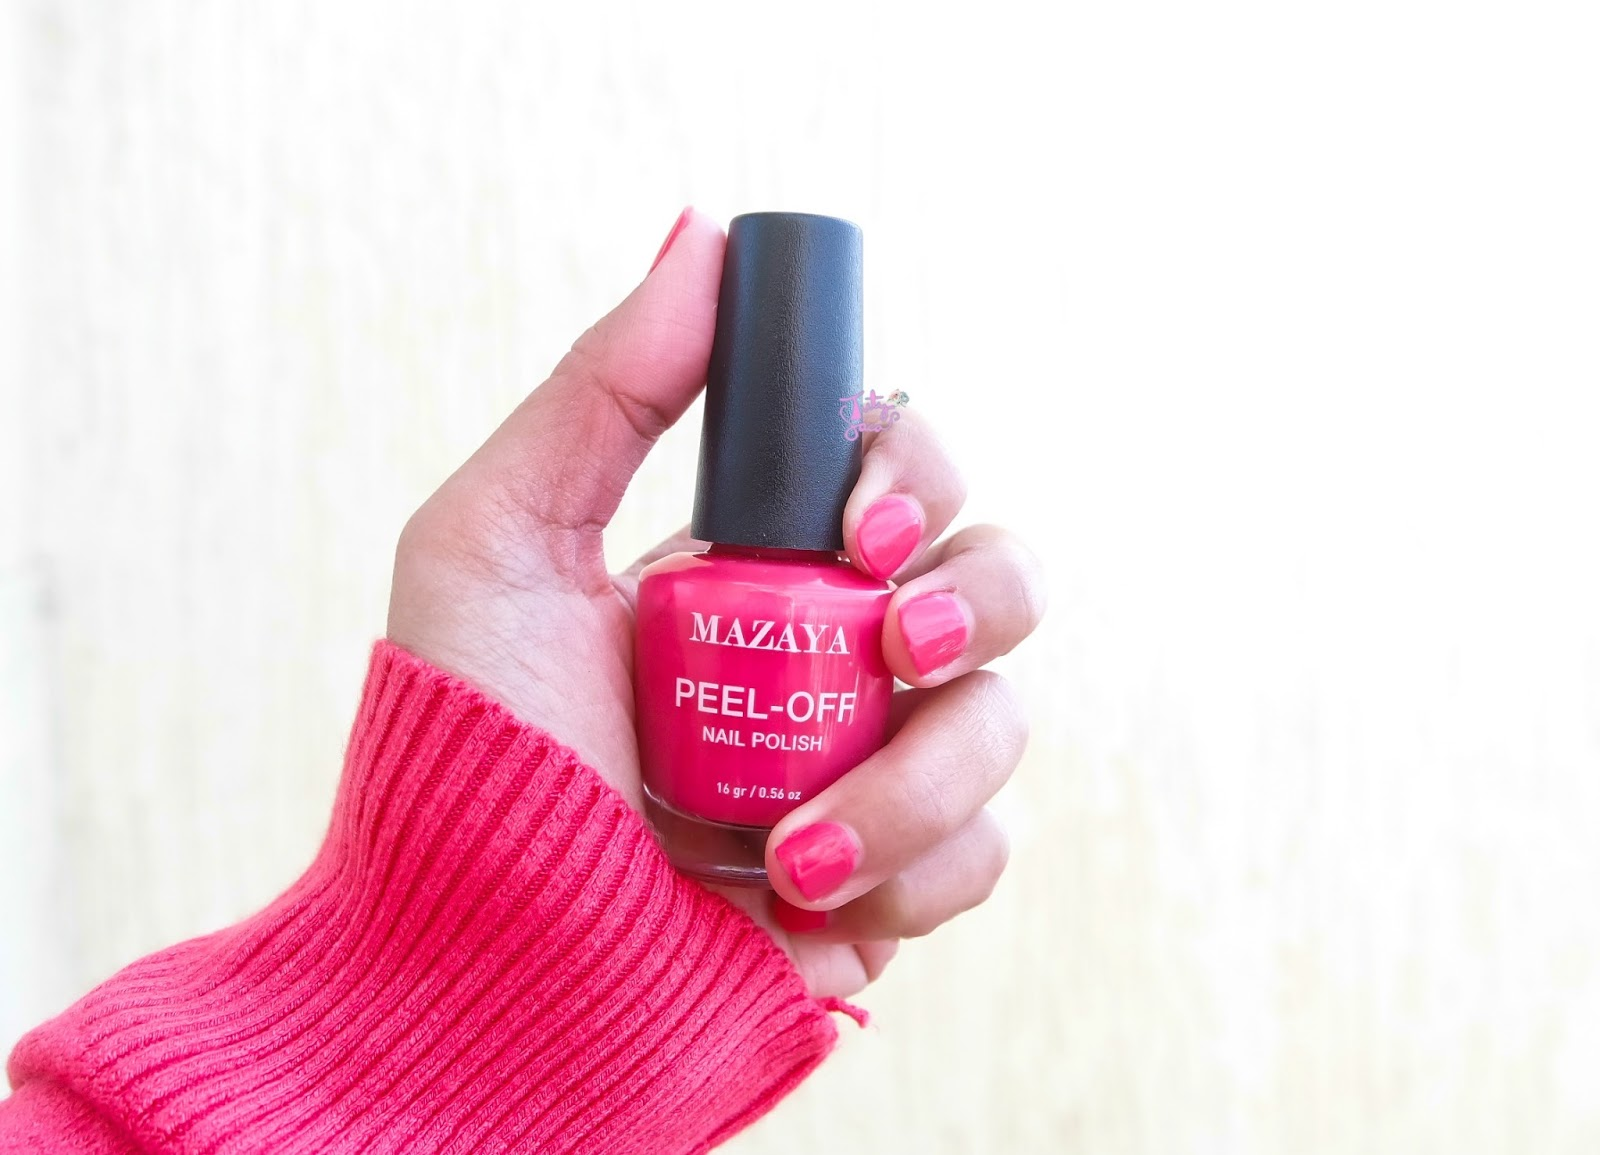 Image result for Mazaya Peel-off Nail Polish